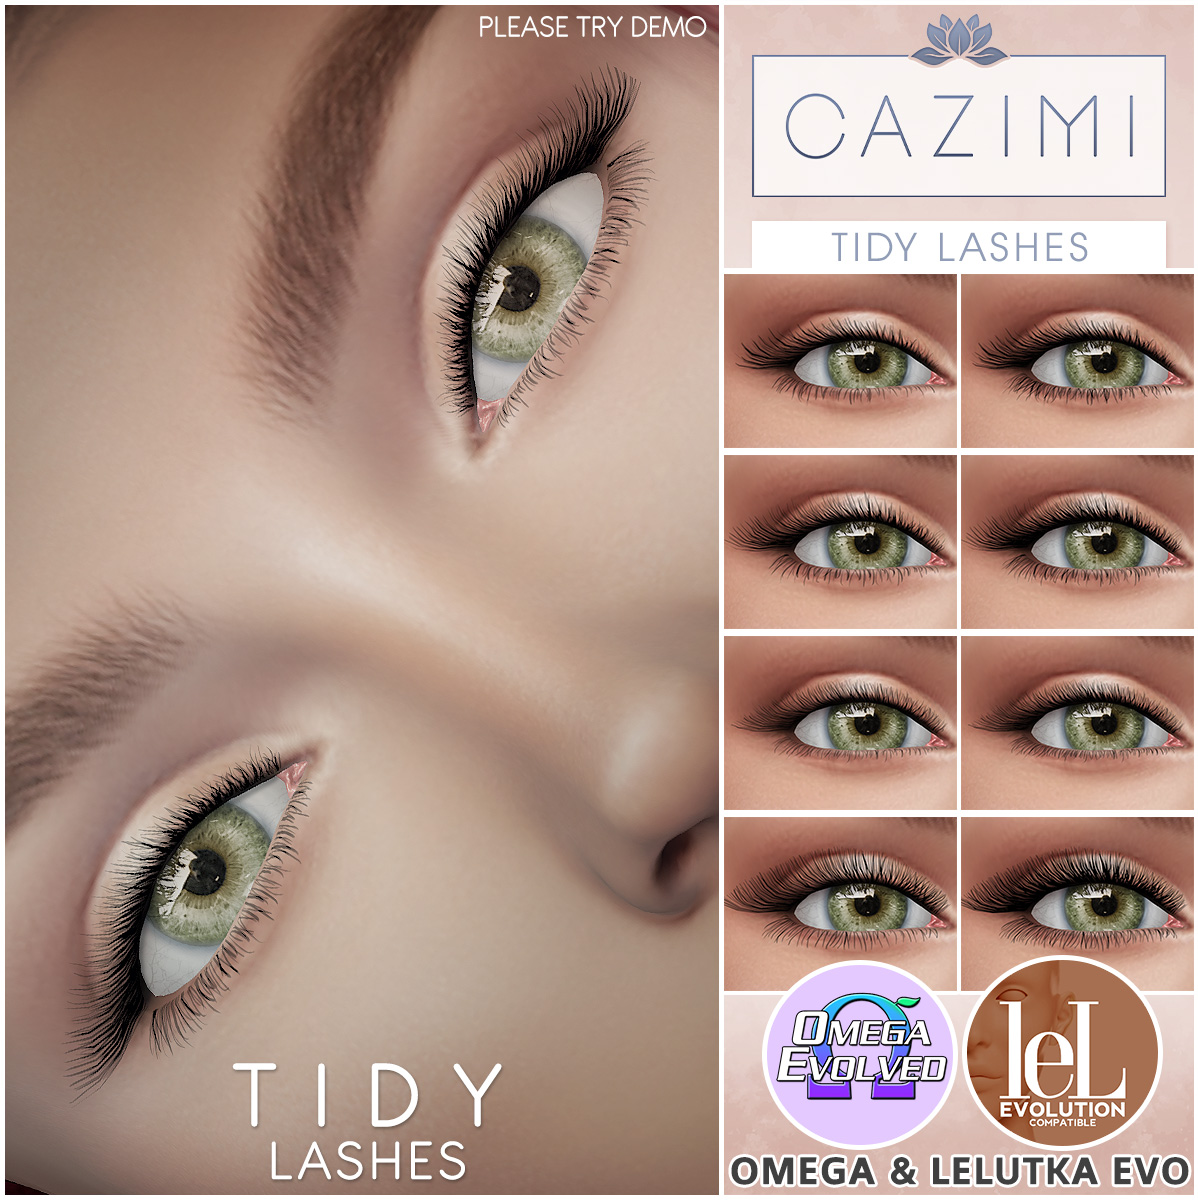 TidyLashes_Ad_1x1